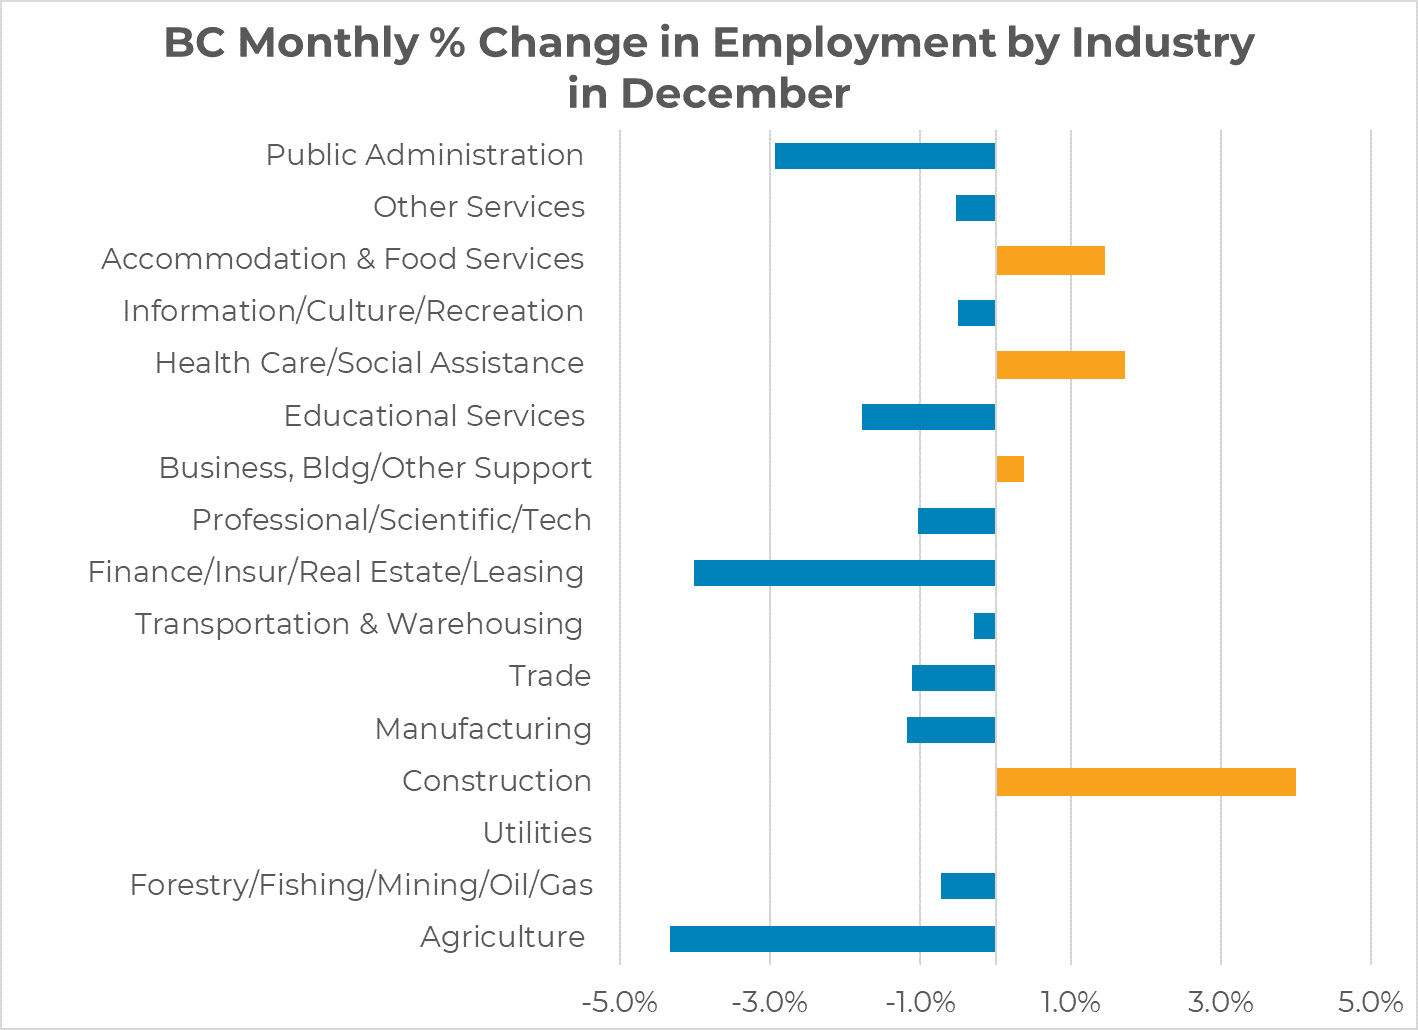 BC monthly employment % change by industry